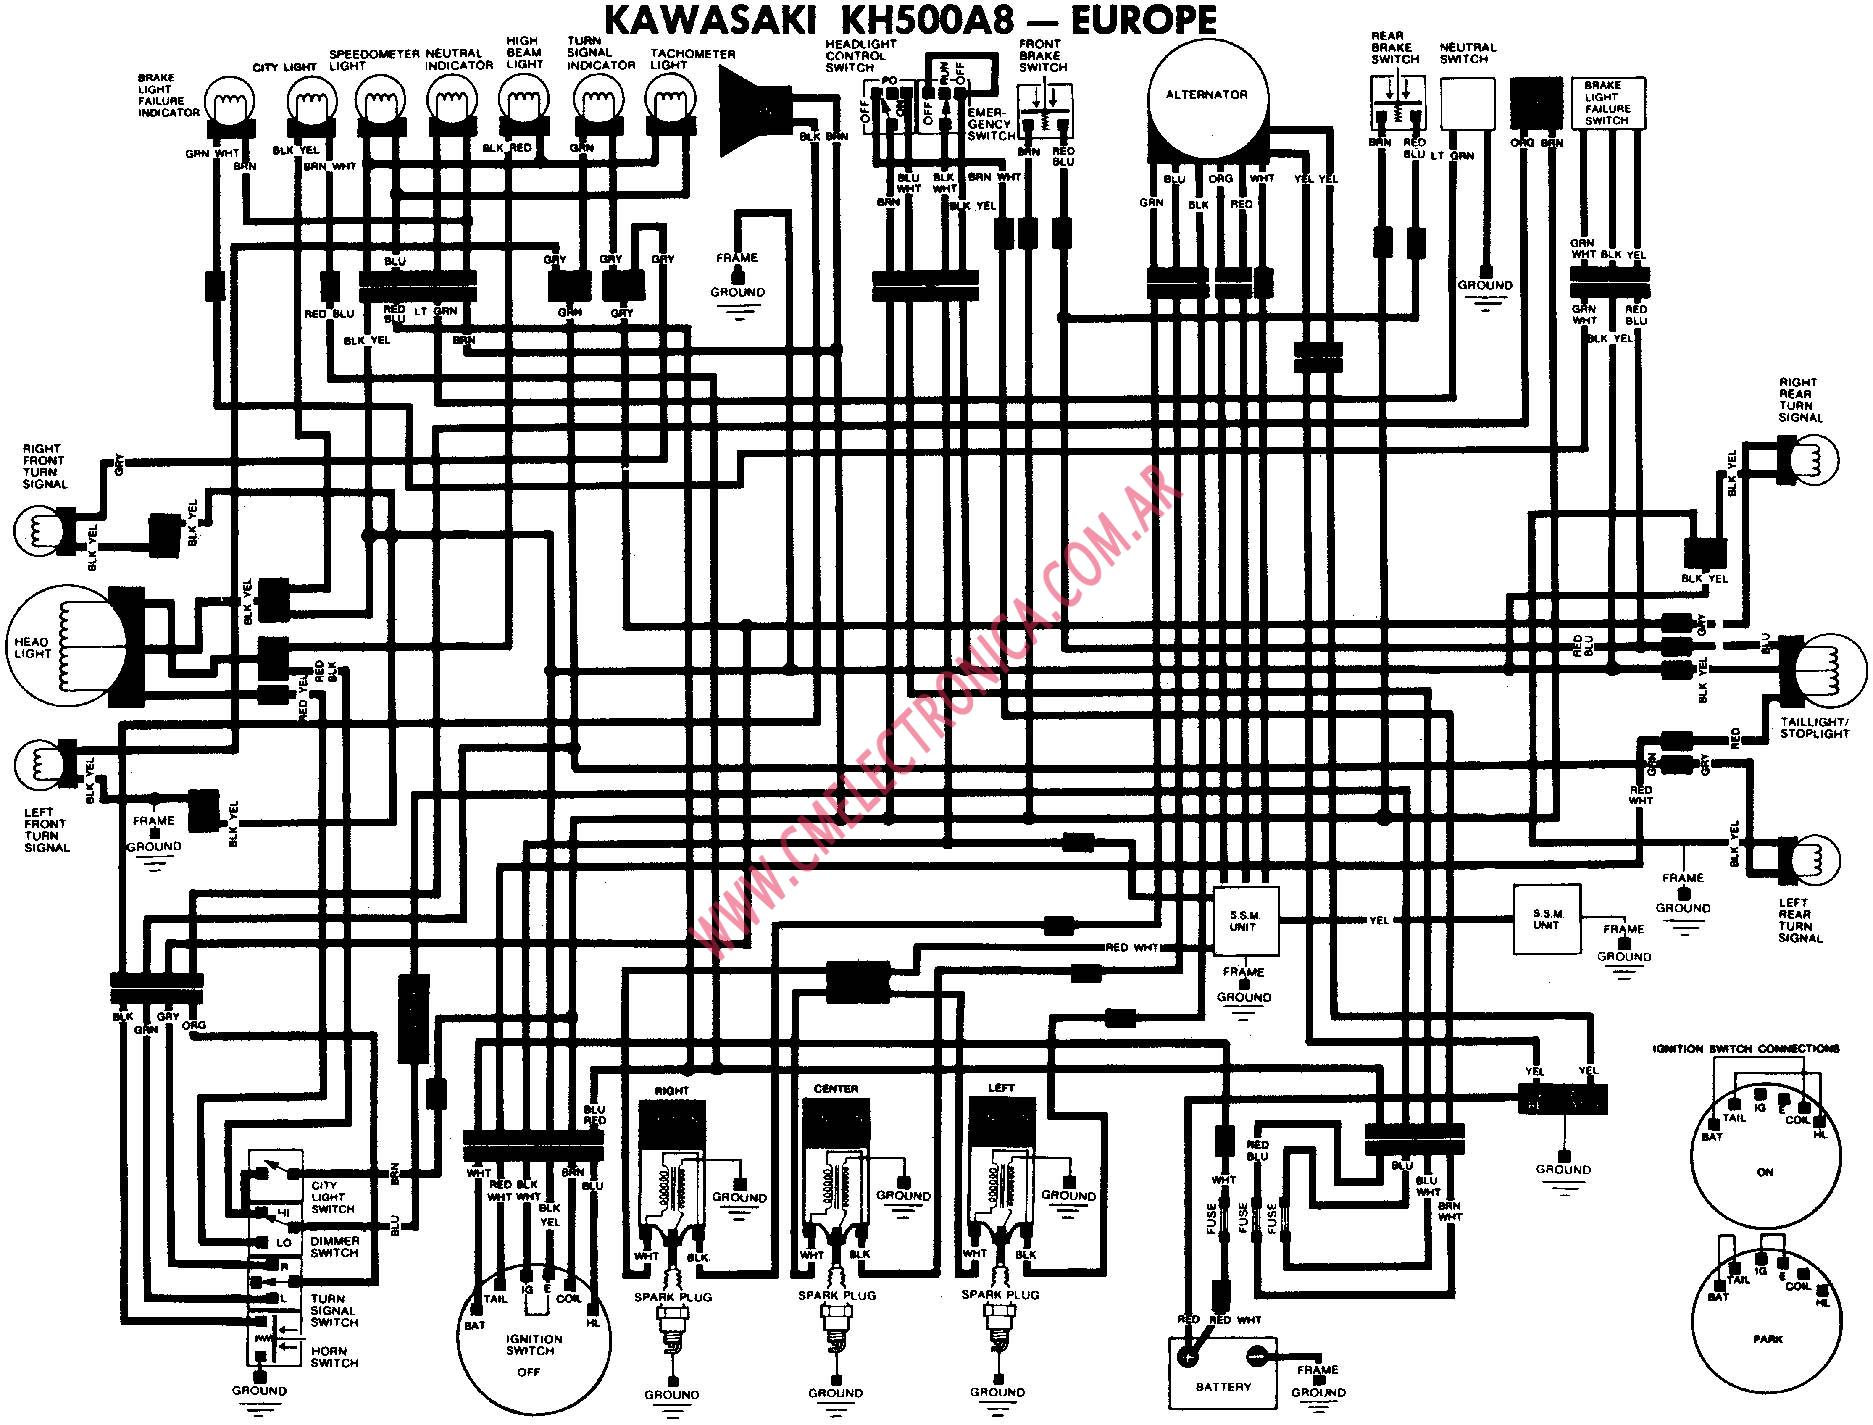 ninja wiring diagram schematics and wiring diagrams ninja wiring diagram diagrams and schematics kawasaki wiring diagrams besides vulcan 750 diagram